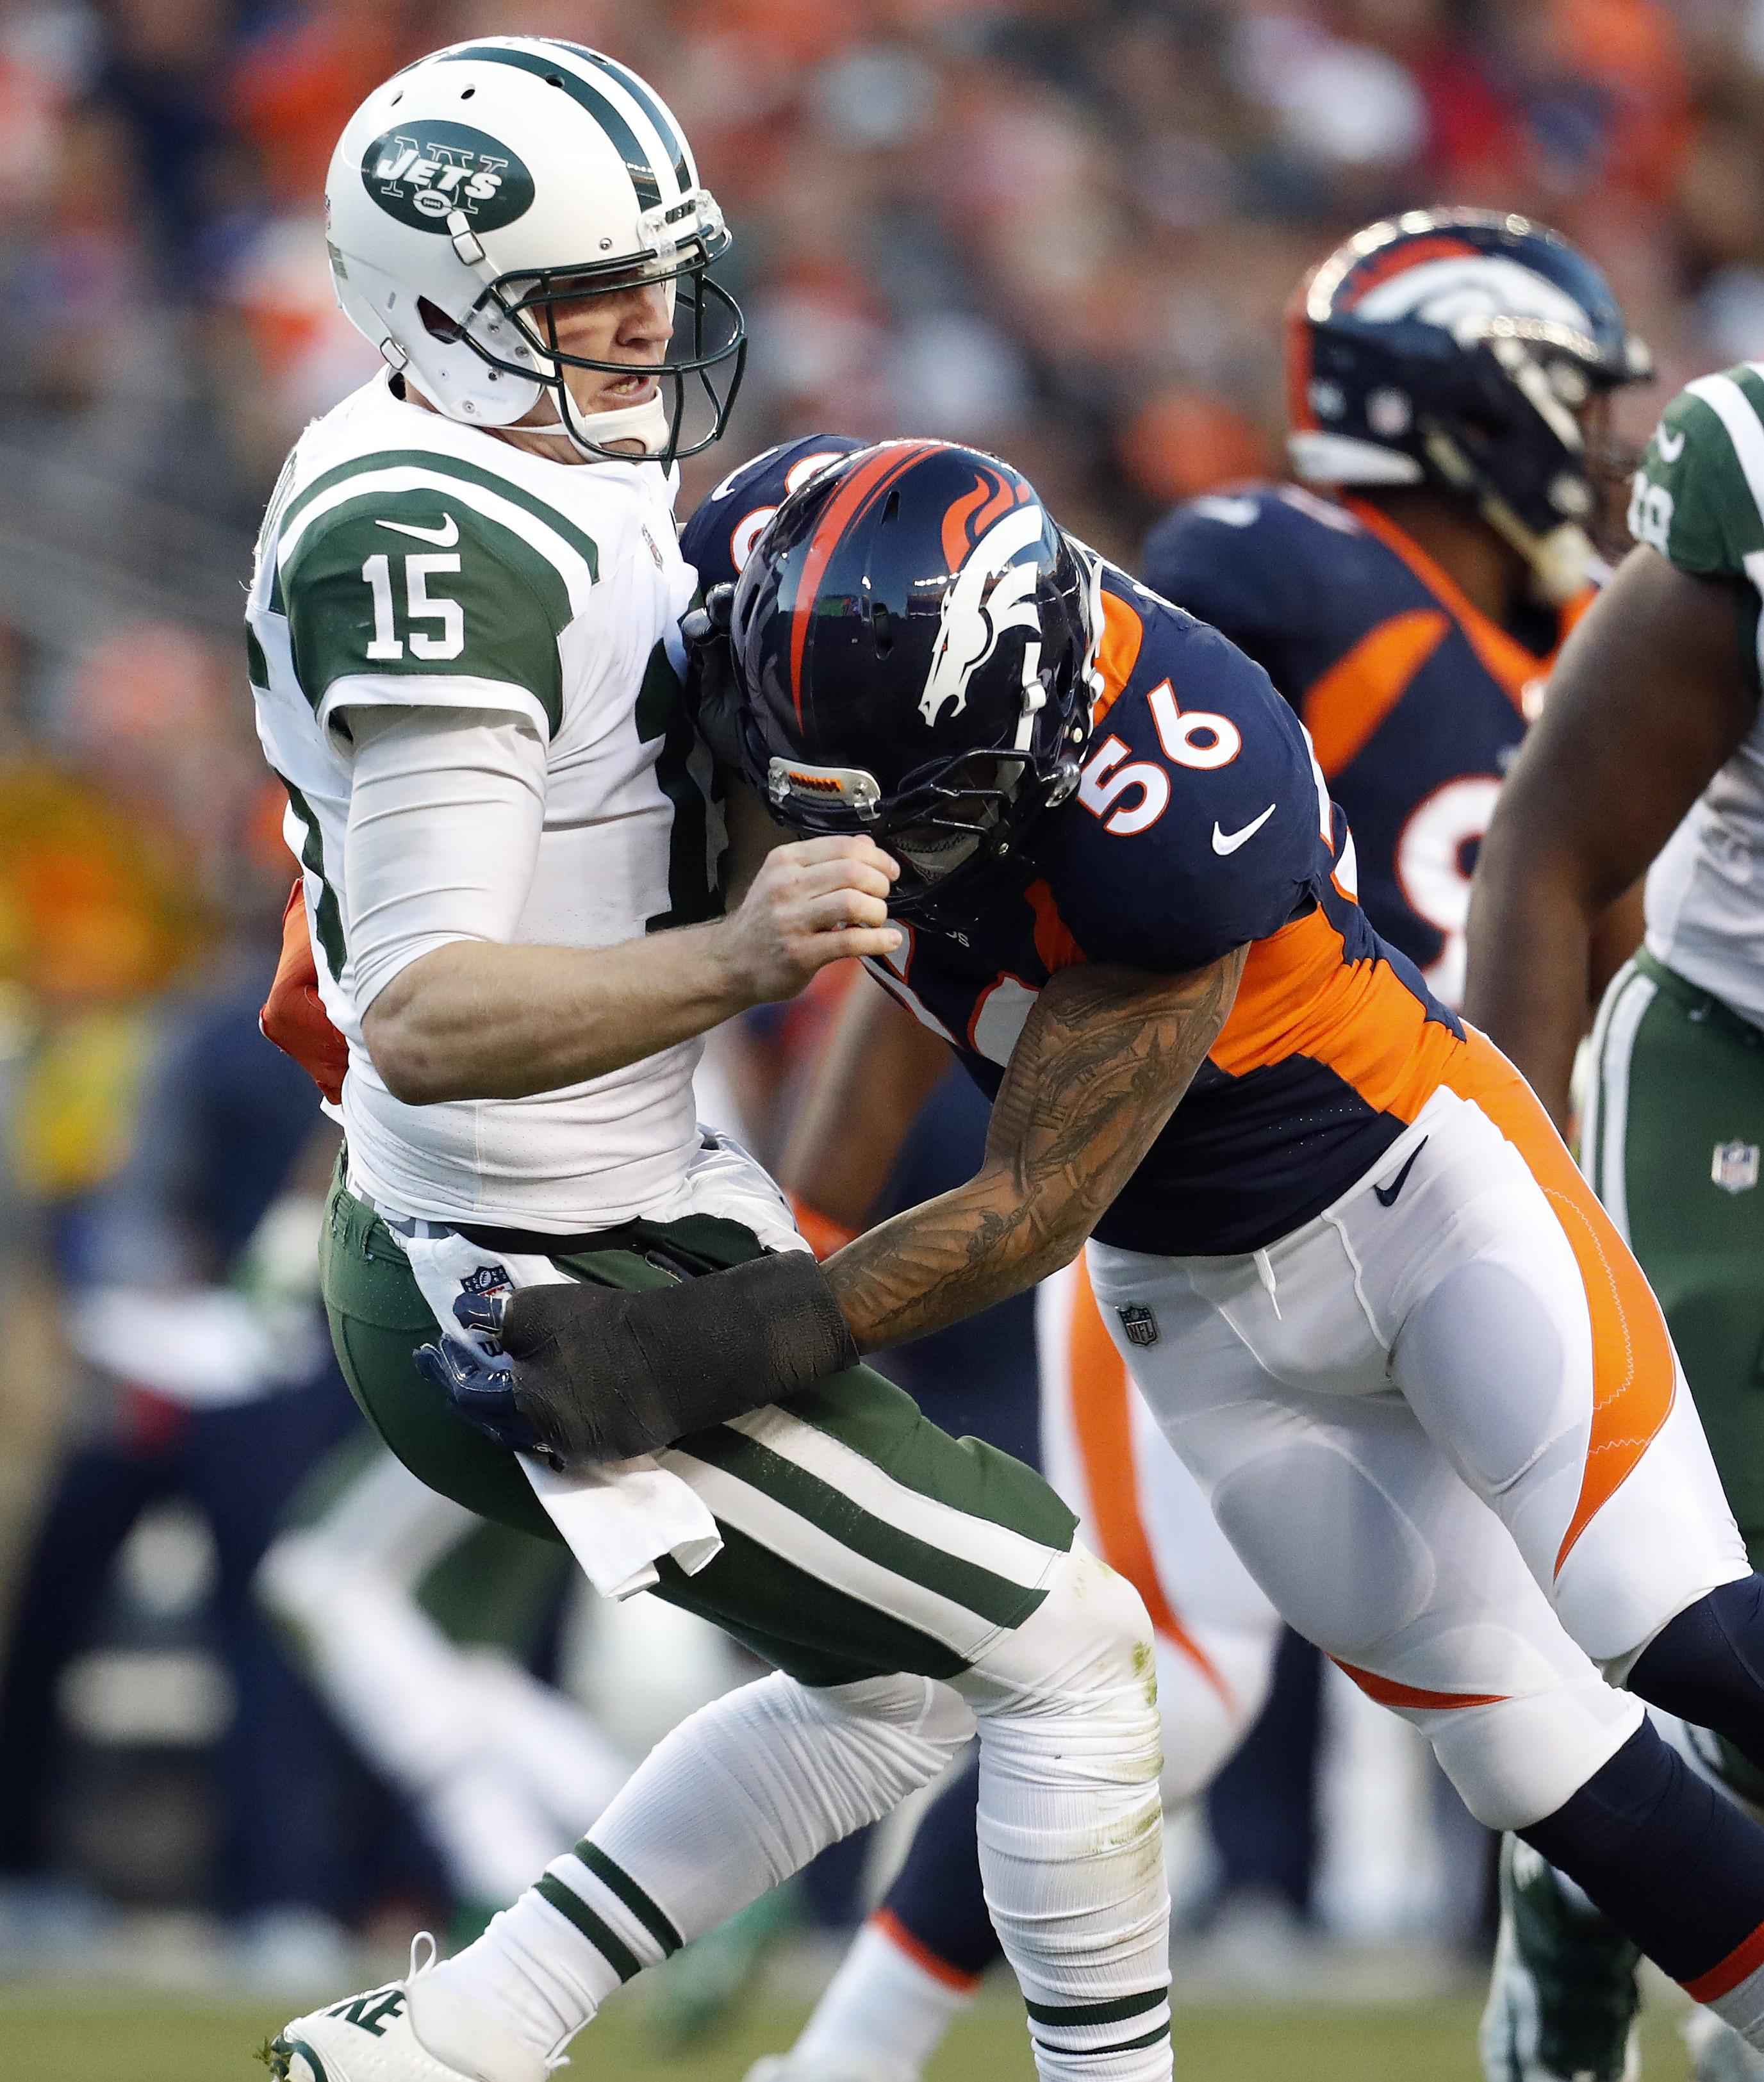 Jets_broncos_football_51896